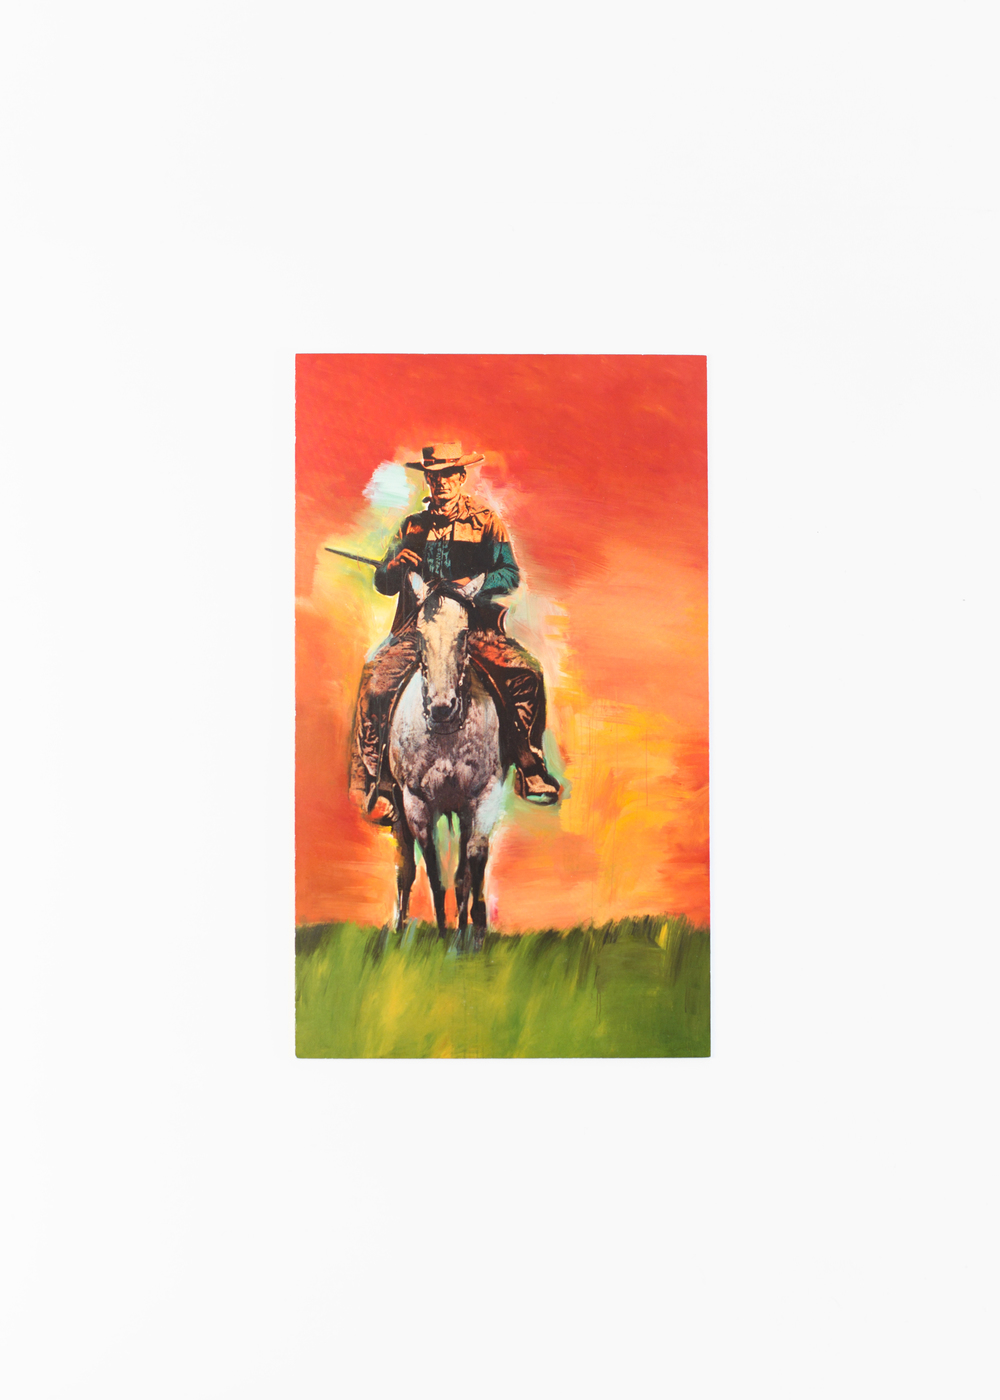 "Richard Prince - Cowboys</br>Invitation Card 14 x 23.5 cm</br>Gagosian 2013</br>€25 <a href=""https://www.paypal.com/cgi-bin/webscr?cmd=_s-xclick&hosted_button_id=AQZQHB2UU4Z7N"">Add to Cart</a>"